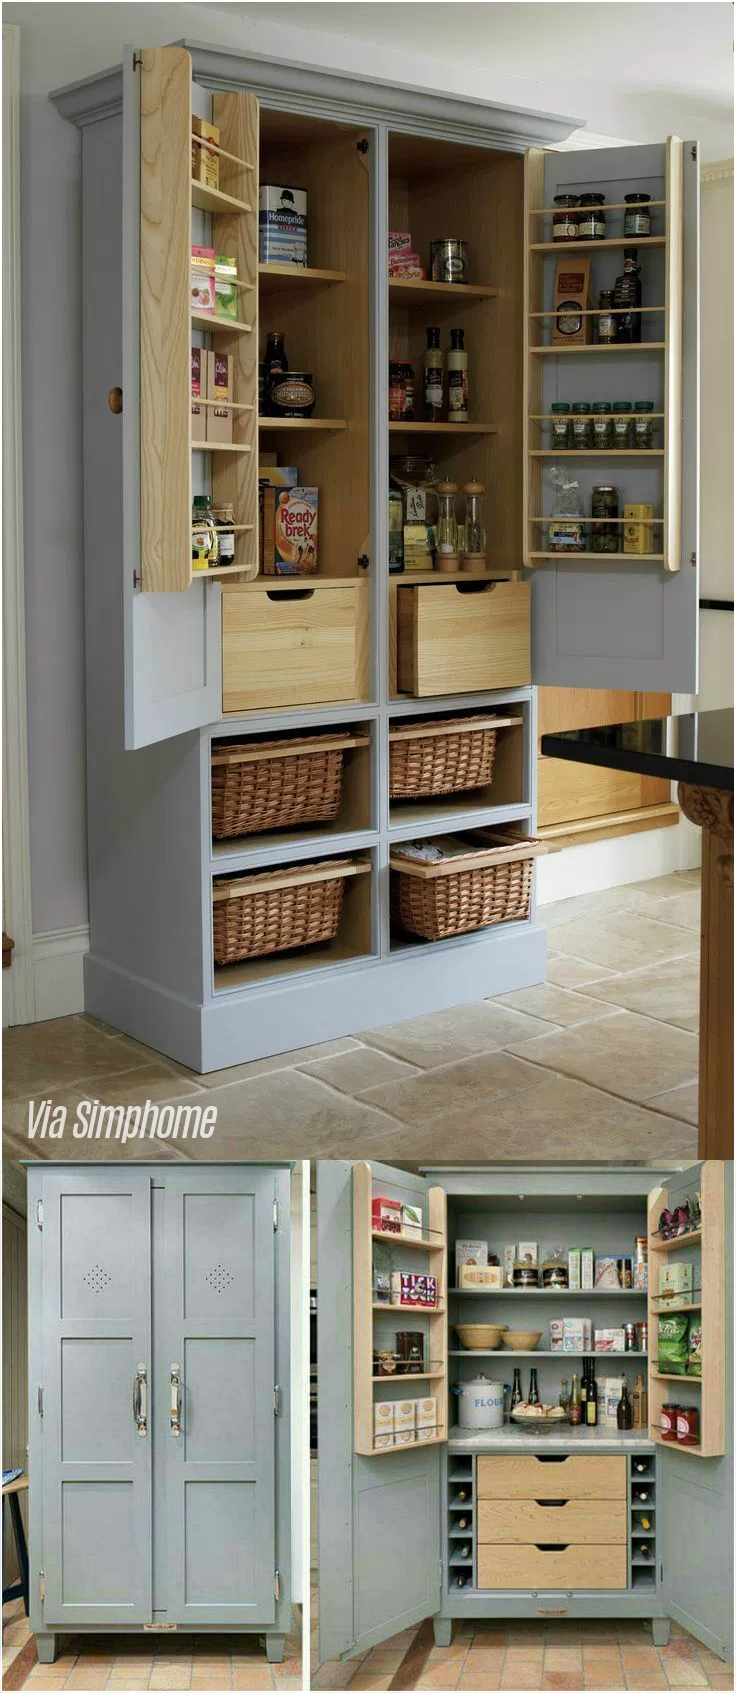 6. Cupboard to Pantry via Simphome.com